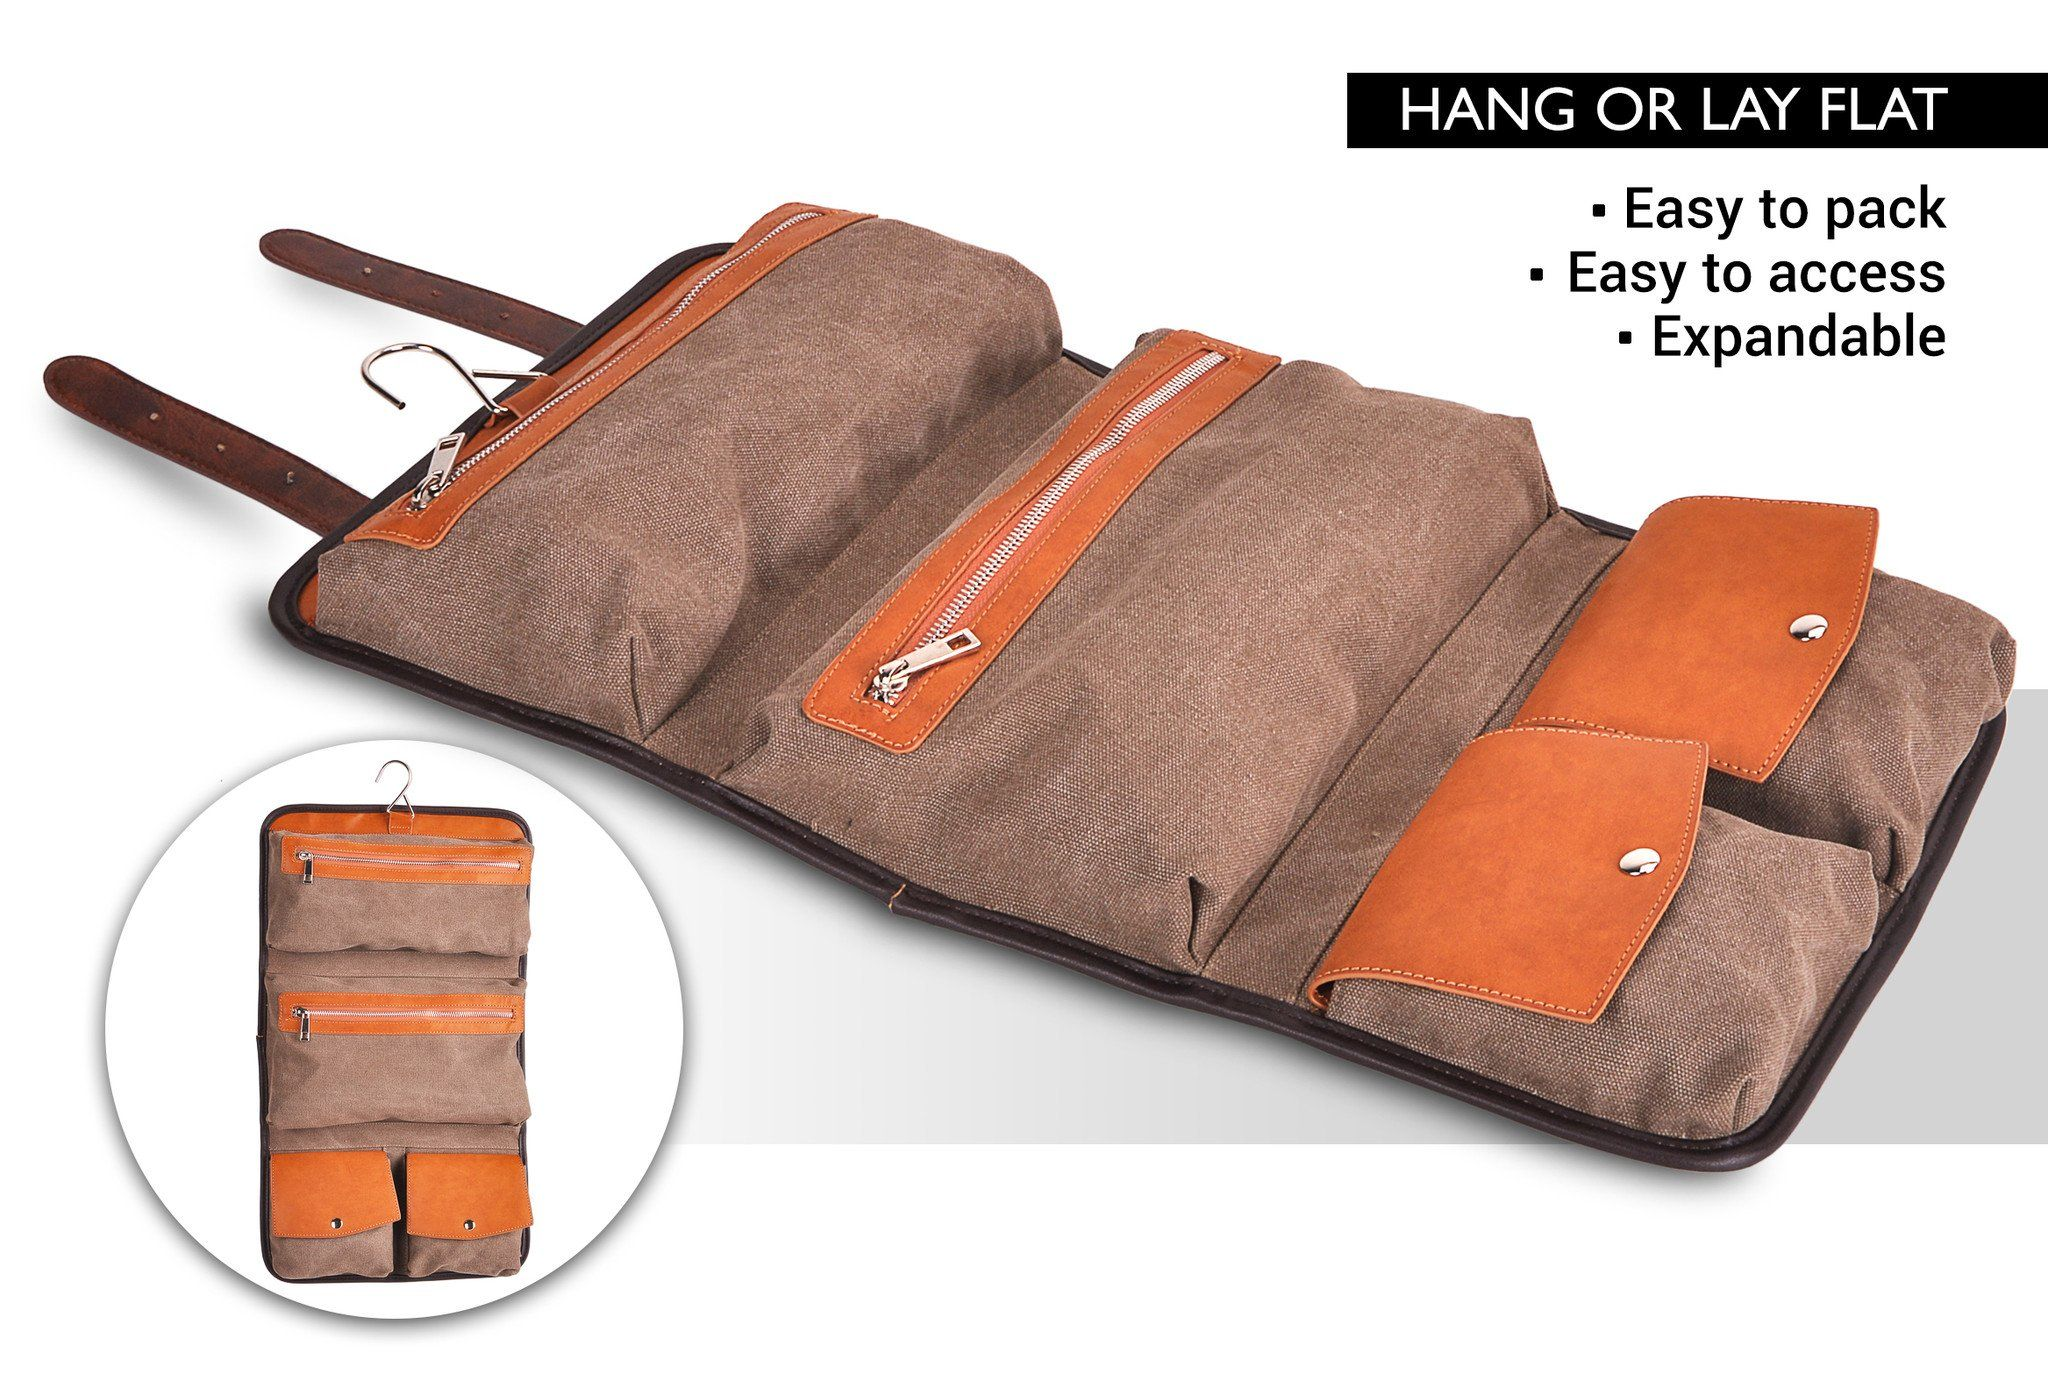 5e7fcad44f Hanging Toiletry Bag. Hanging Toiletry Bag Leather Accessories